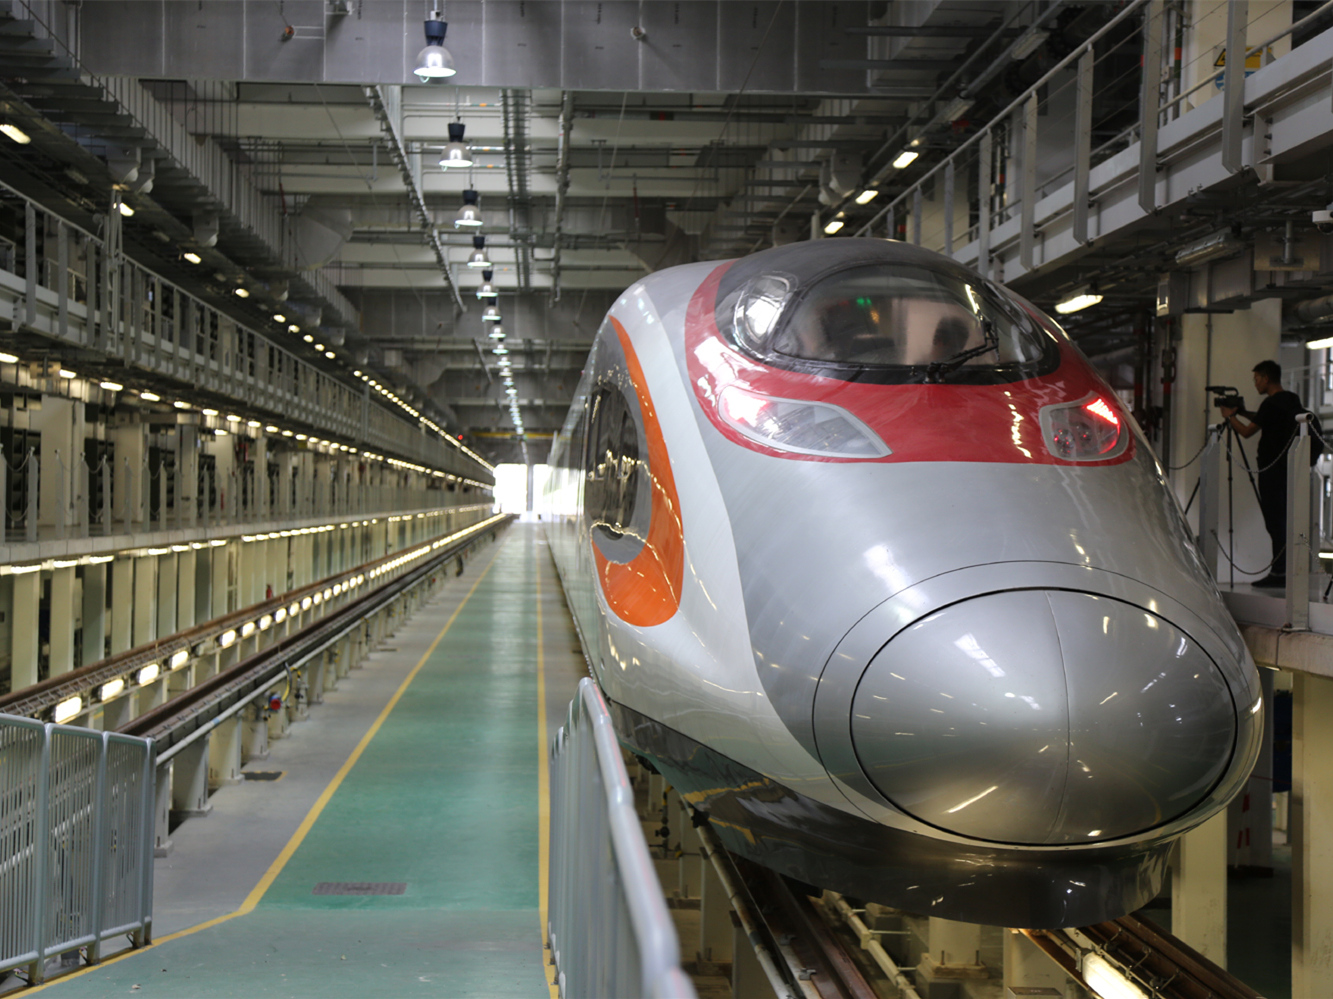 Hong Kong holds opening ceremony for Express Rail Link to mainland